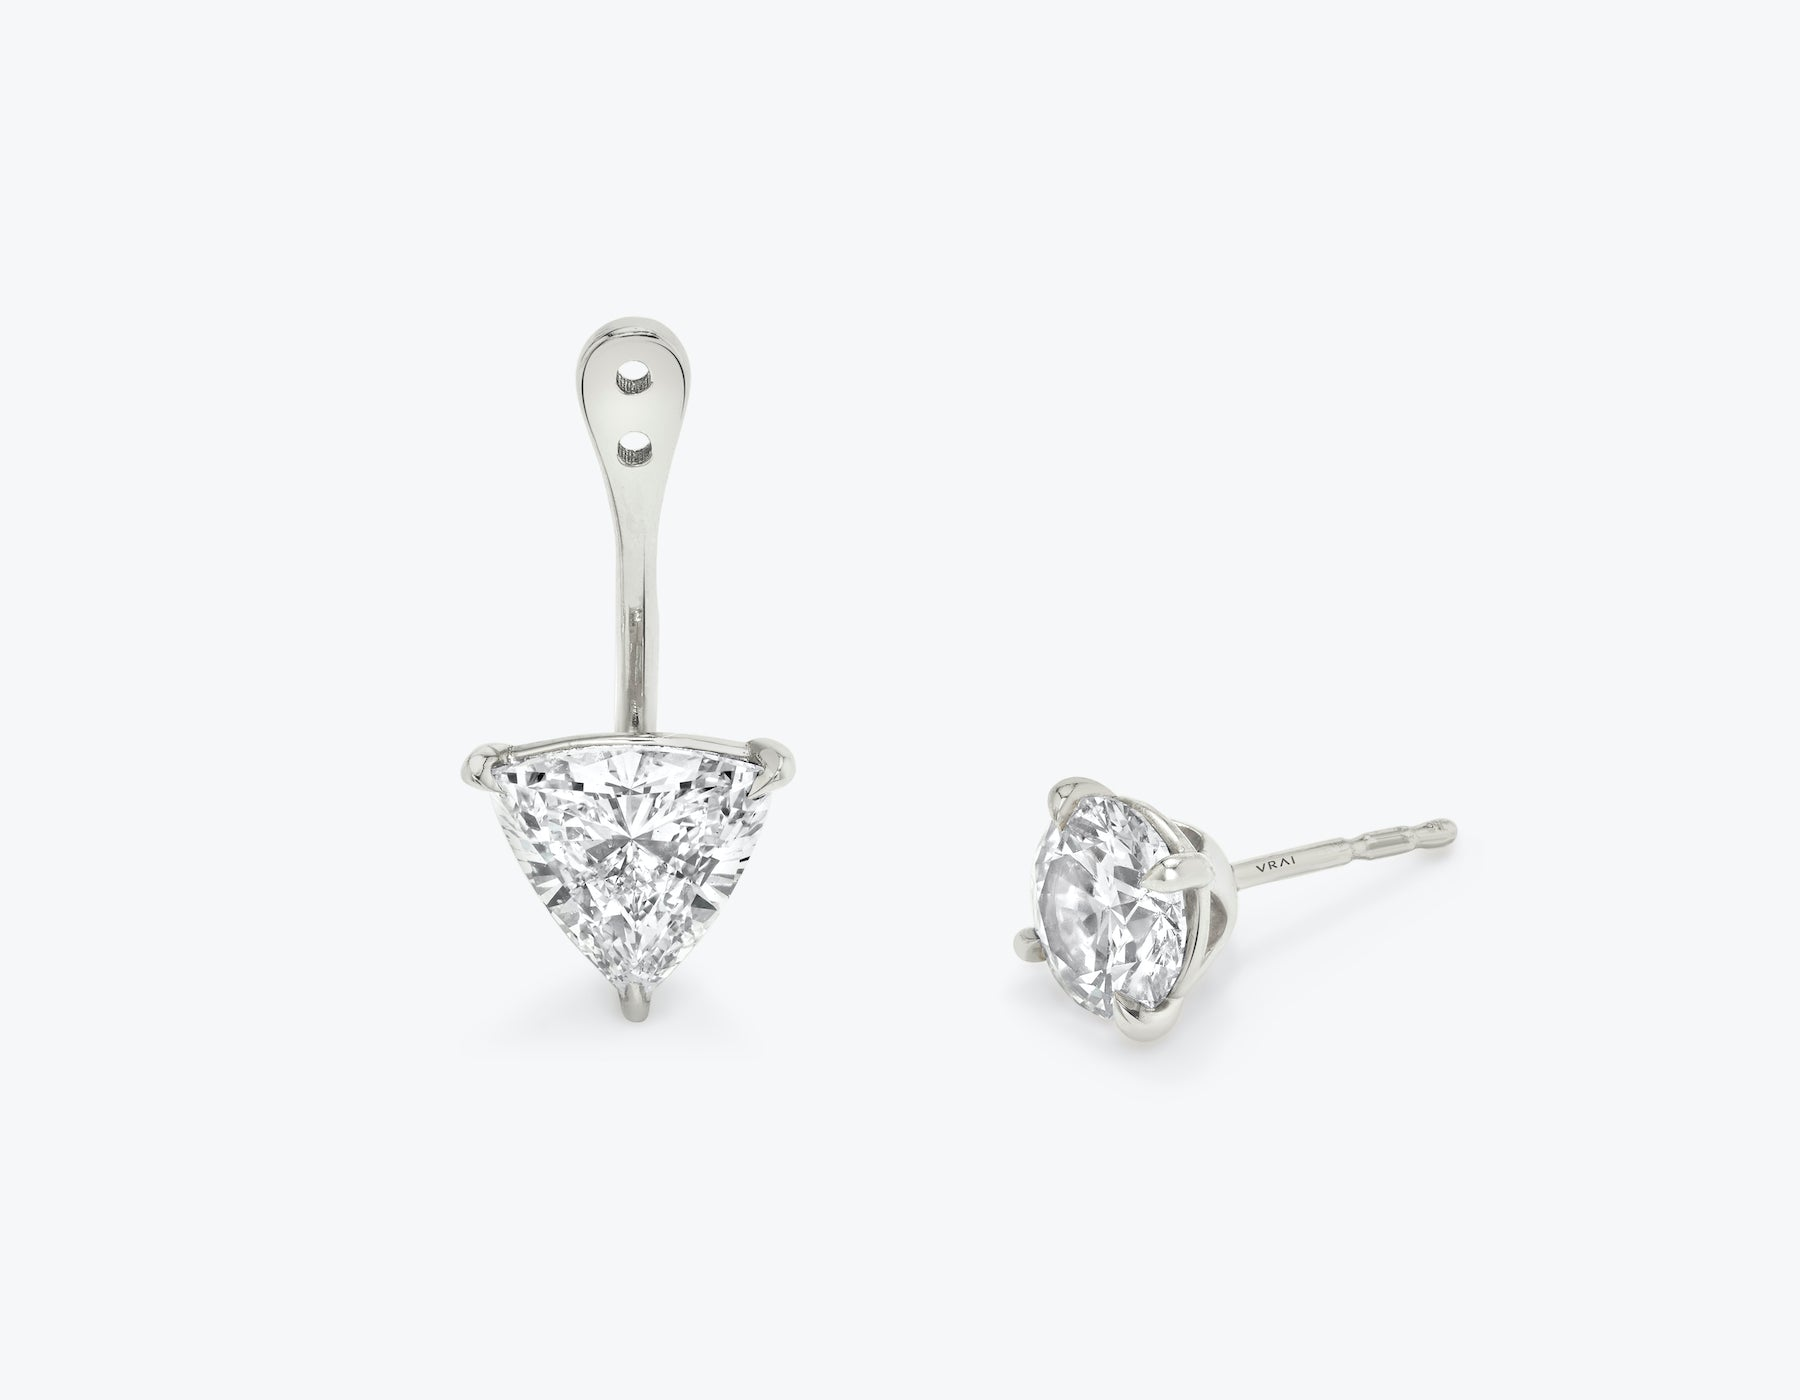 Vrai solitaire trillion diamond drop ear jackets made in 14k solid gold with sustainably created diamonds with round solitaire diamond stud, 14K White Gold